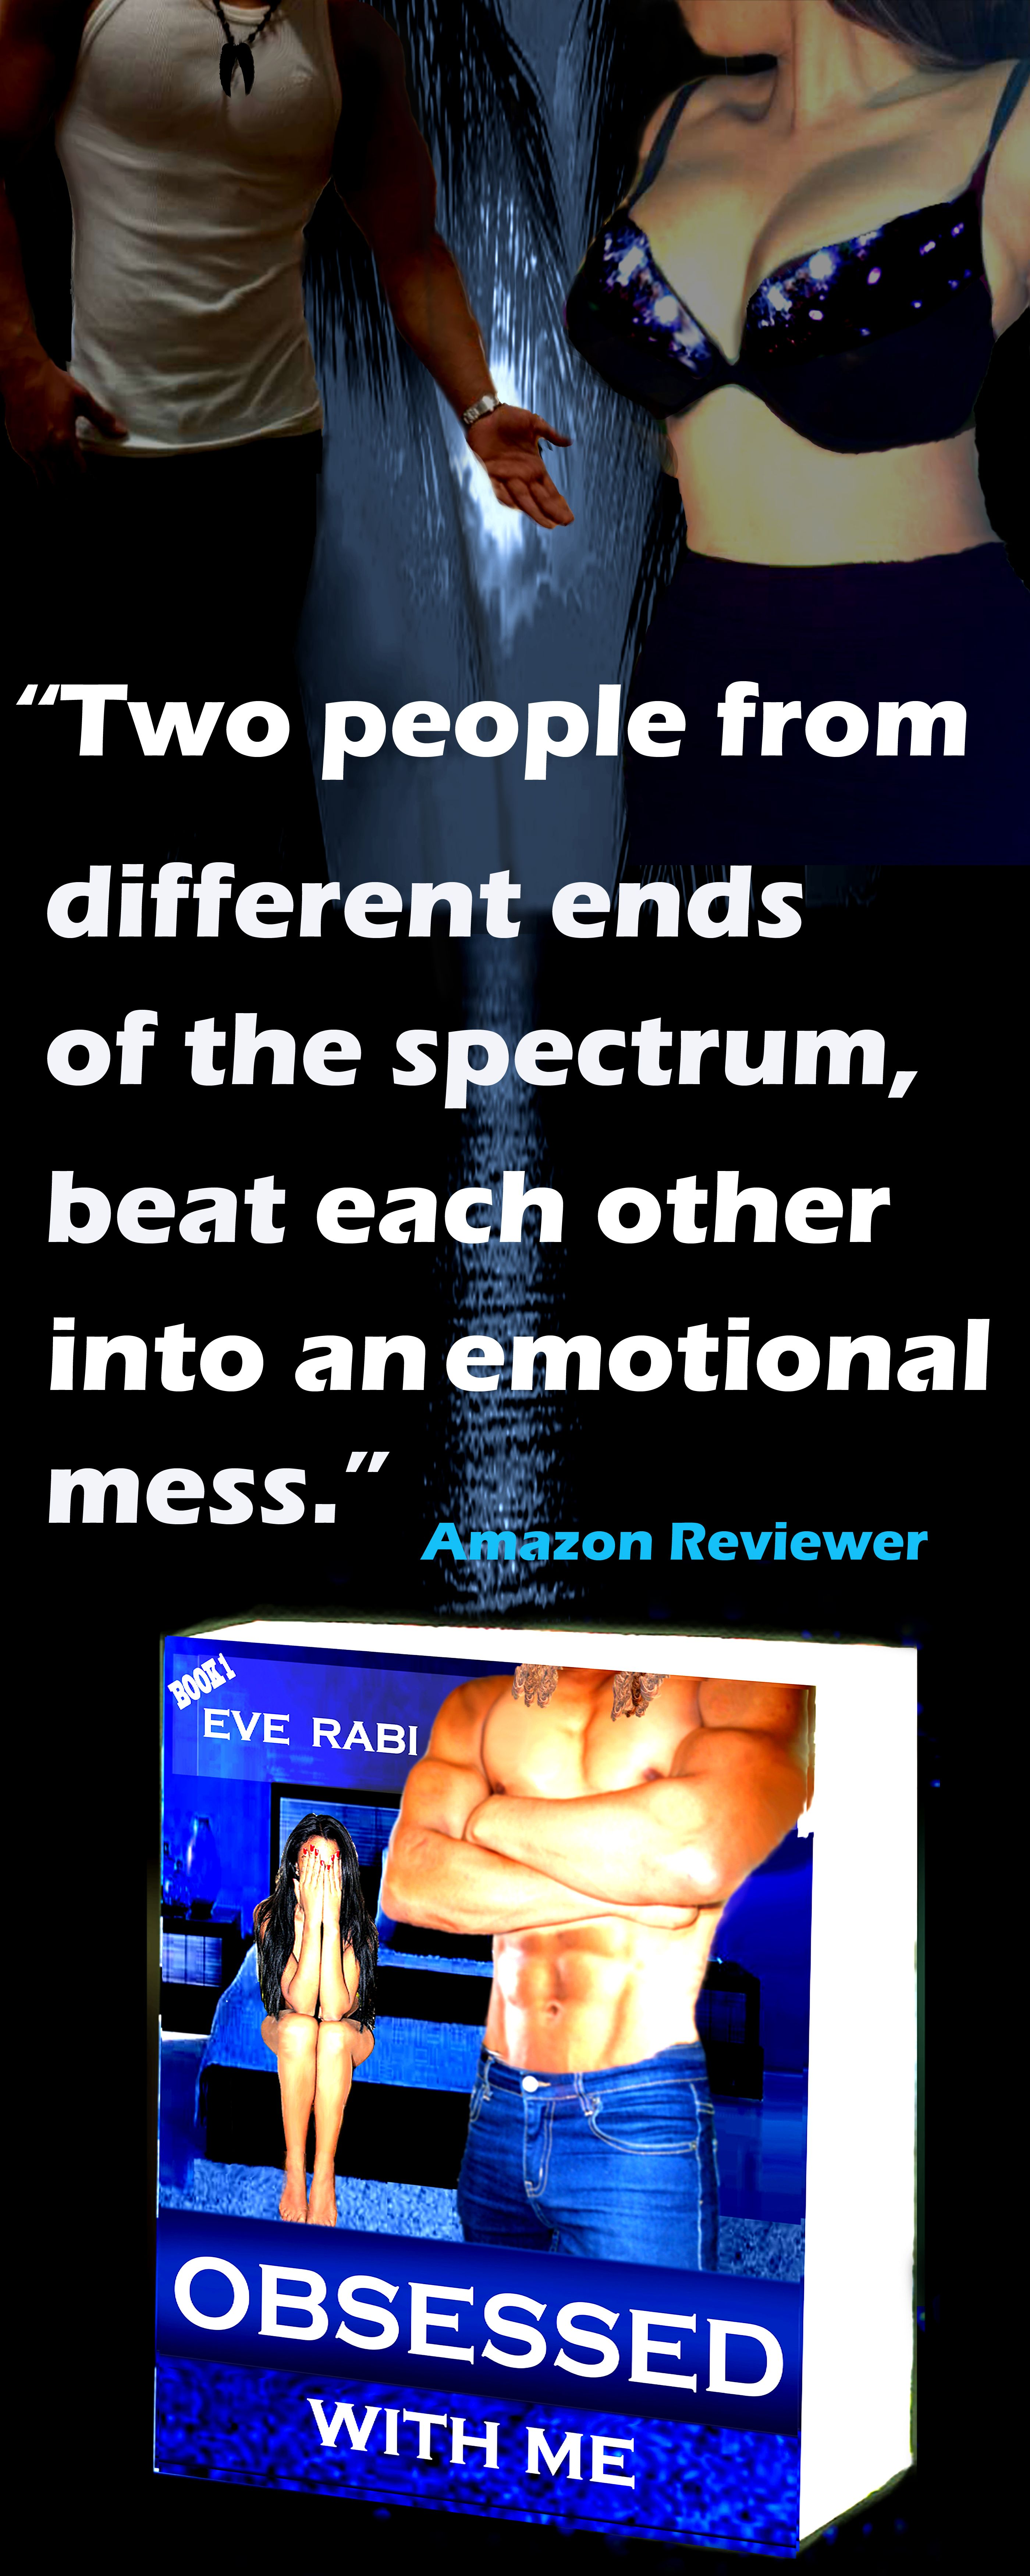 """""""Obsessed with me"""" a gripping crime romance- sure to make for a good beach read this summer! """"After reading this I have to buy the next one since I need to know what's gonna happen next, this series is just awesome!"""" Amazon reviews http://www.amazon.com/Obsessed-Me-Eve-Rabi-ebook/dp/B00CT1TMG6/ref=sr_1_sc_2?s=books&ie=UTF8&qid=1420595997&sr=1-2-spell&keywords=eve+rabi+obessed"""